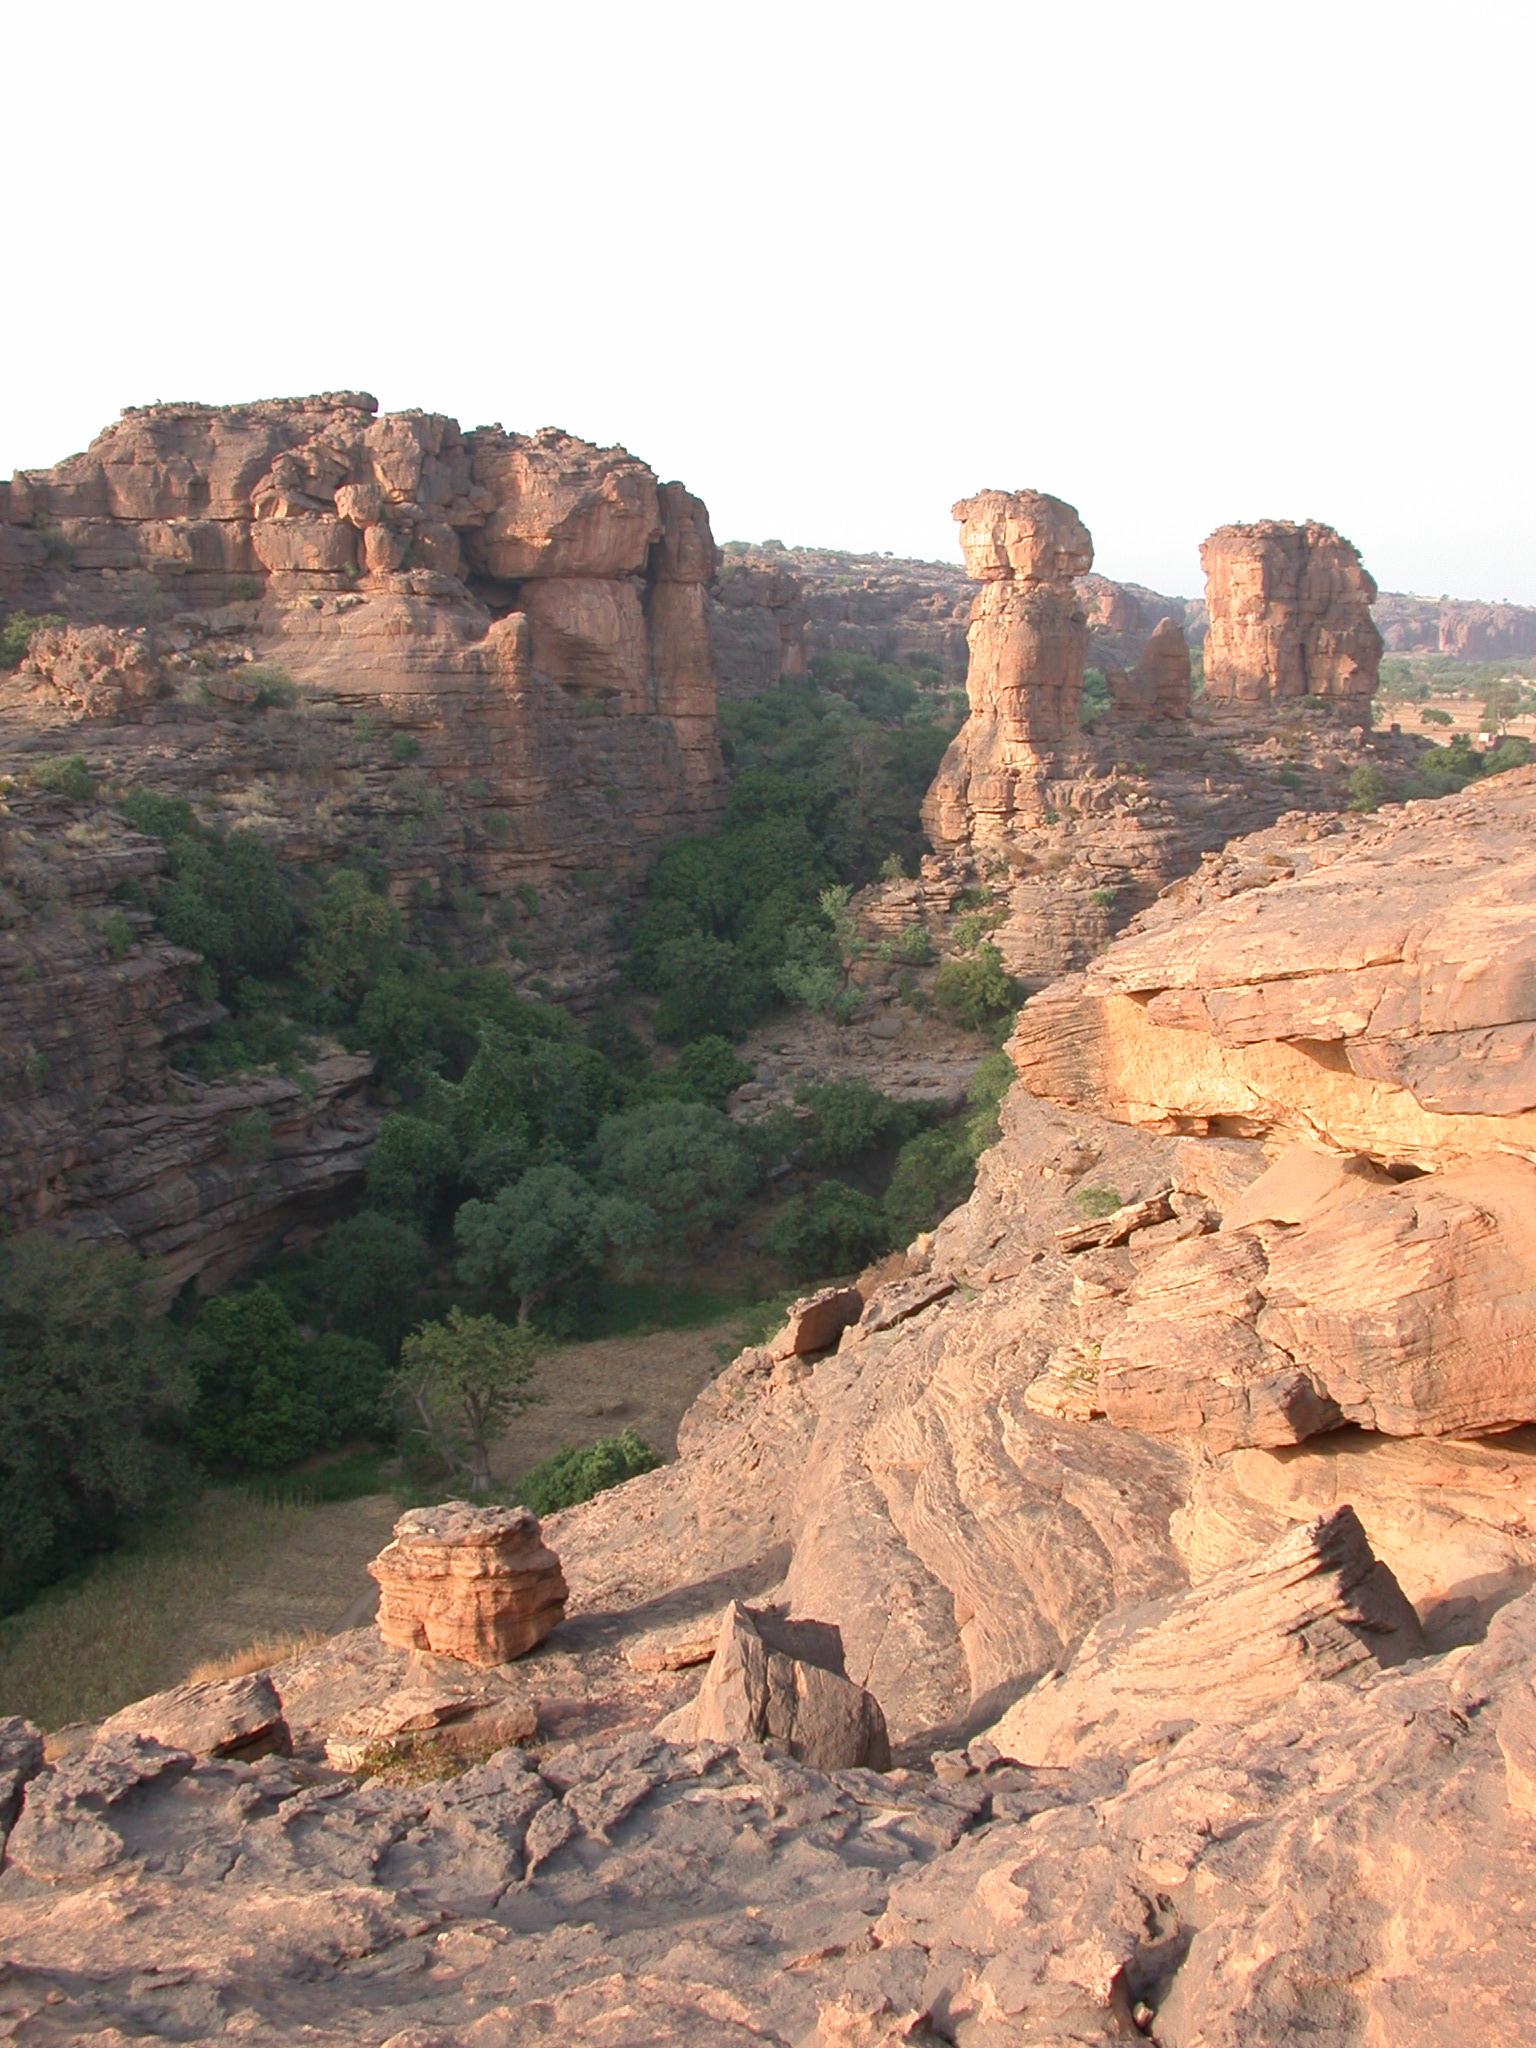 View of Canyon Trail From Summit of Falaise Escarpment Near Begnetmoto Village, Dogon Country, Mali